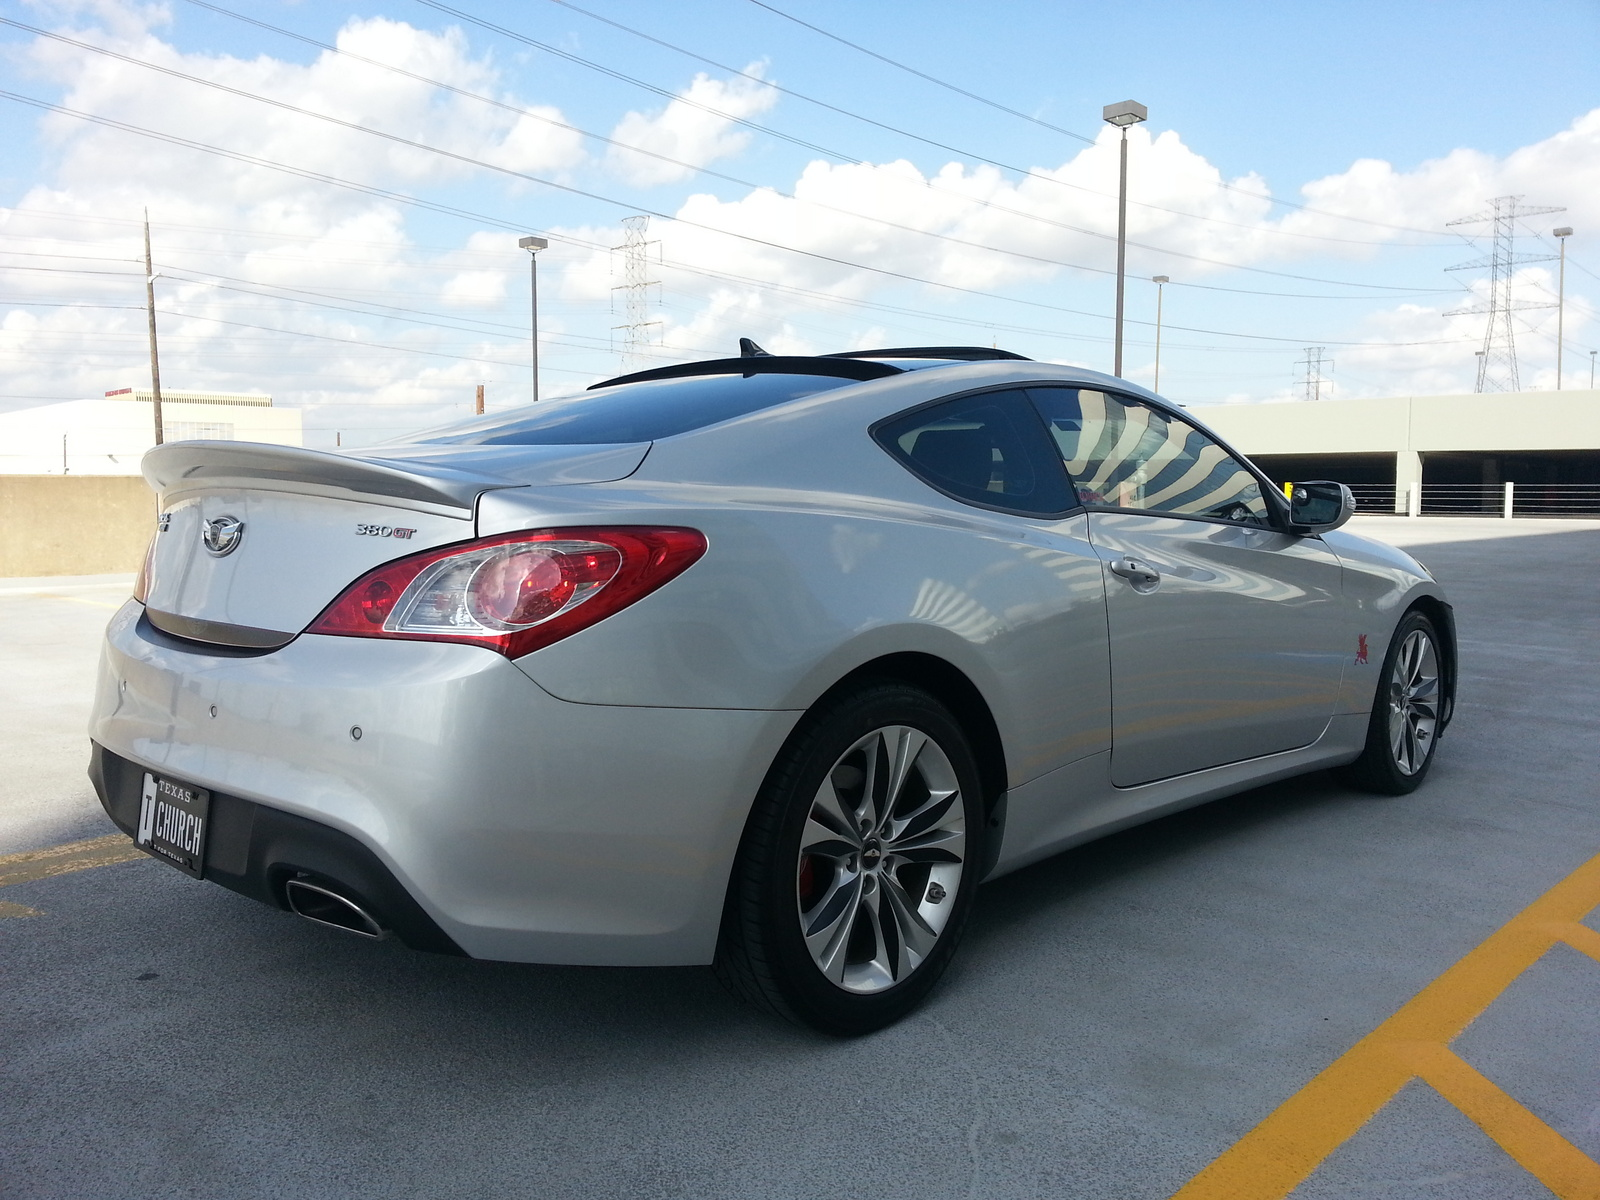 picture of 2010 hyundai genesis coupe 3 8 grand touring. Black Bedroom Furniture Sets. Home Design Ideas